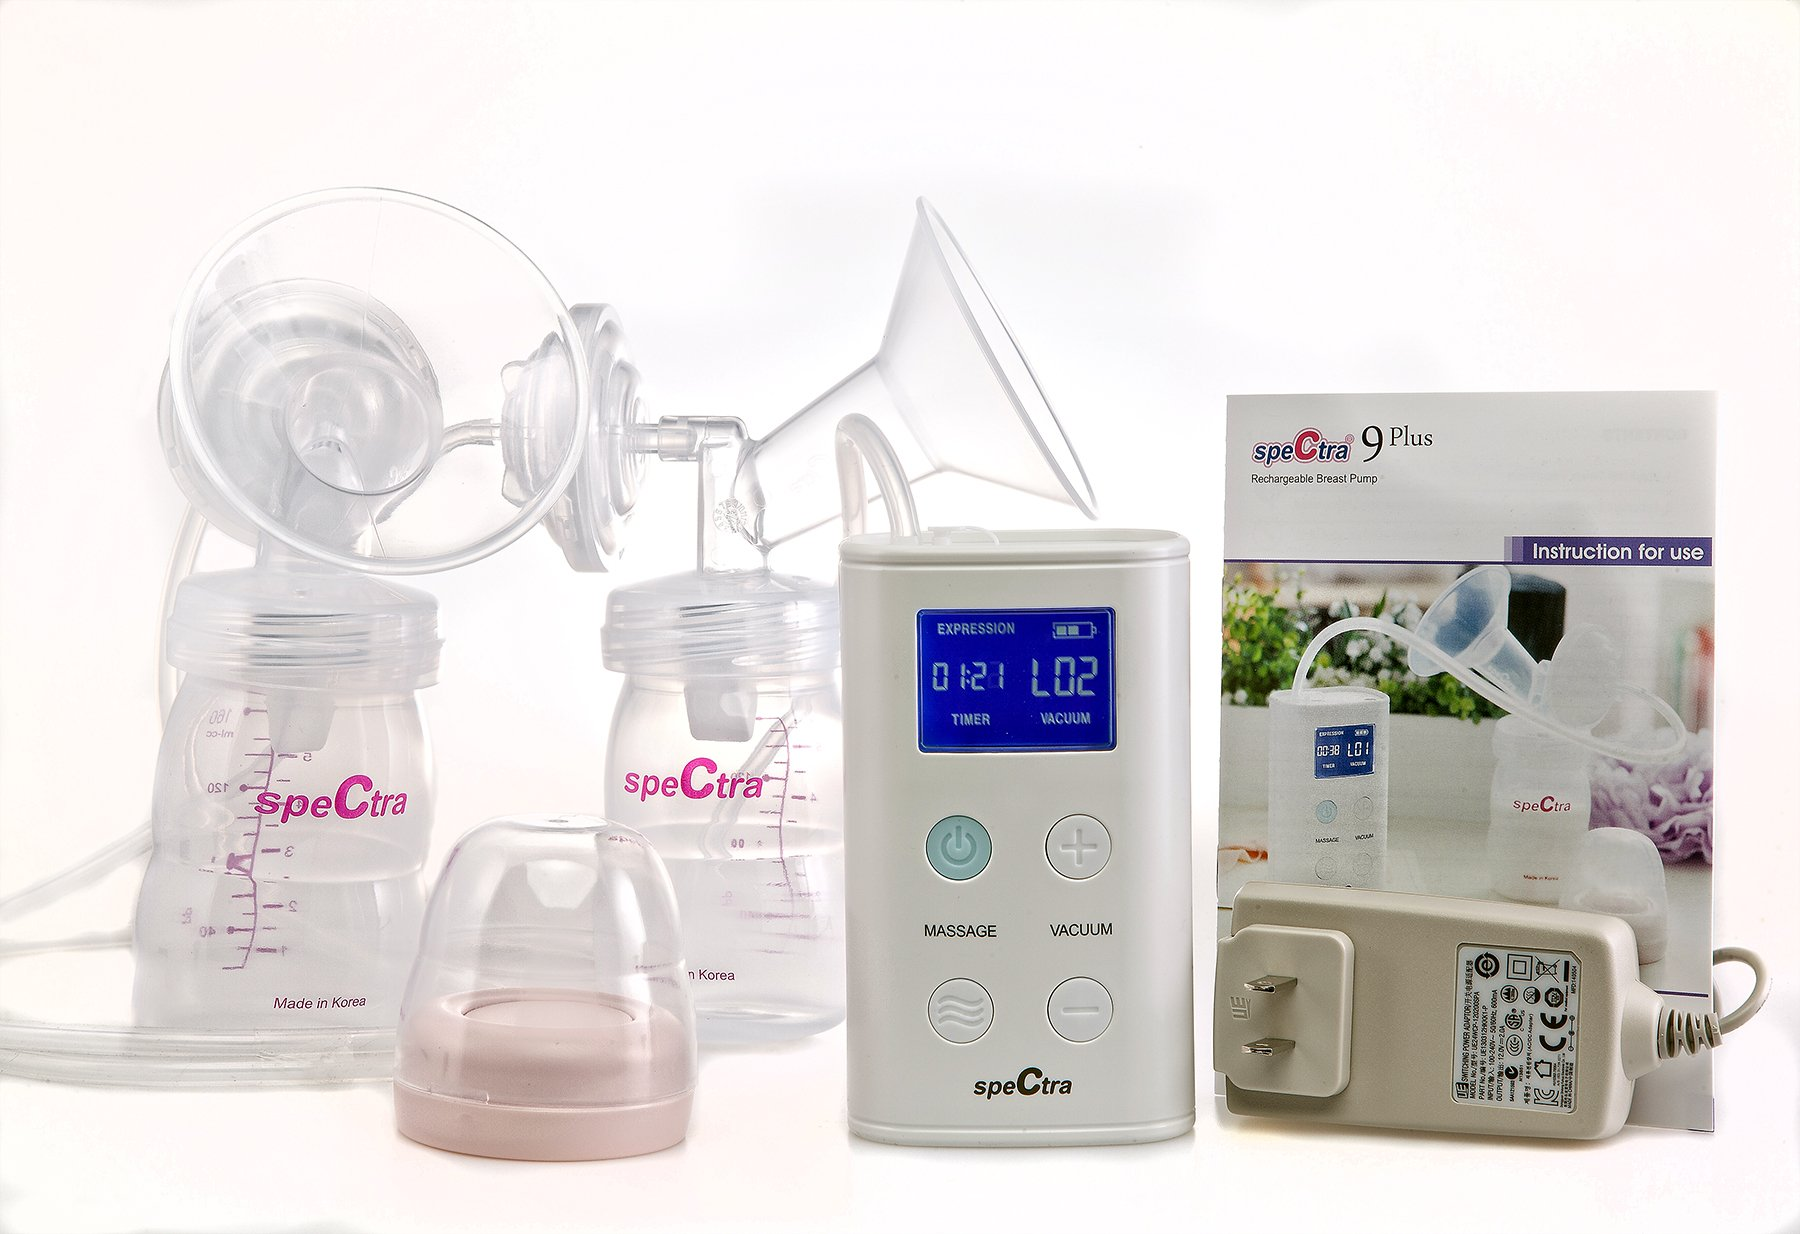 Spectra 9 Plus Rechargeable Breast Pump (Personal Use)